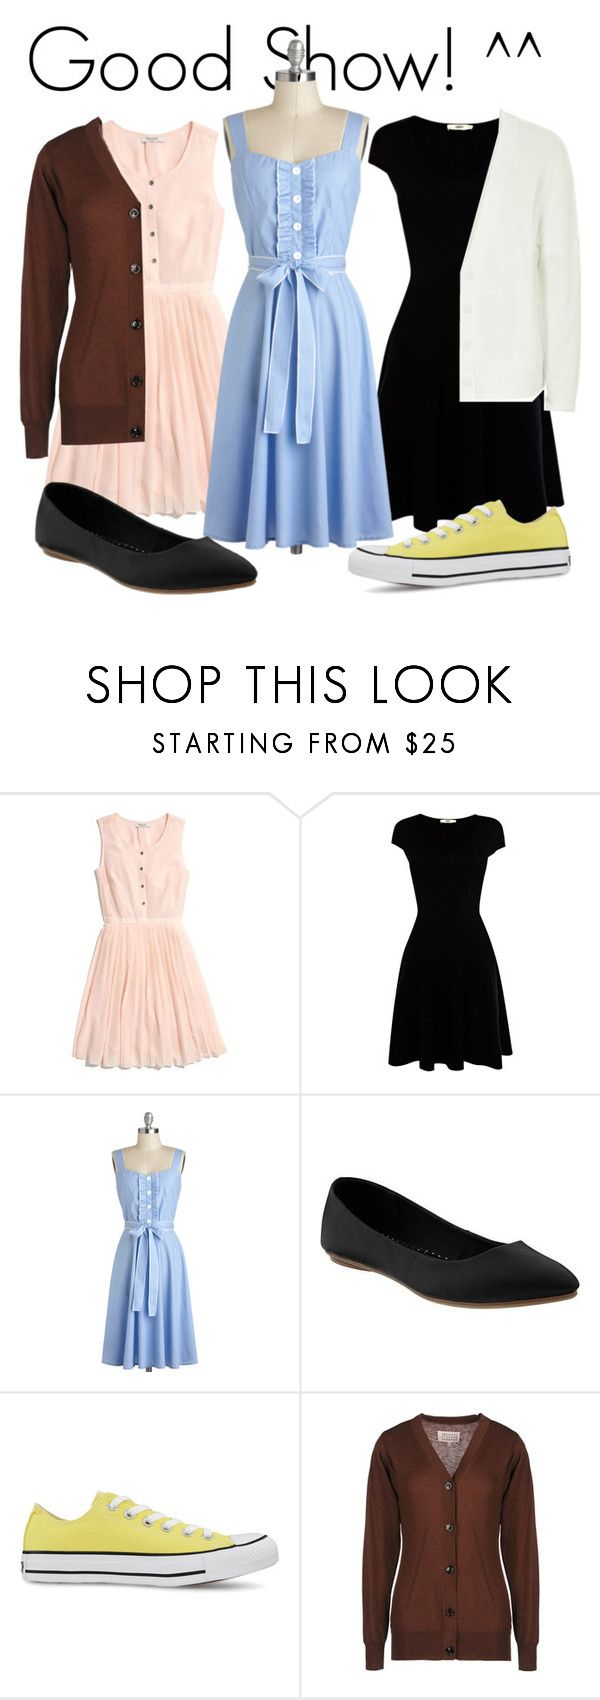 """Disneybound Challenge Wrap-up"" by totallytrue ❤ liked on Polyvore featuring Madewell, Oasis, Old Navy, Converse, Maison Margiela and Reiss"